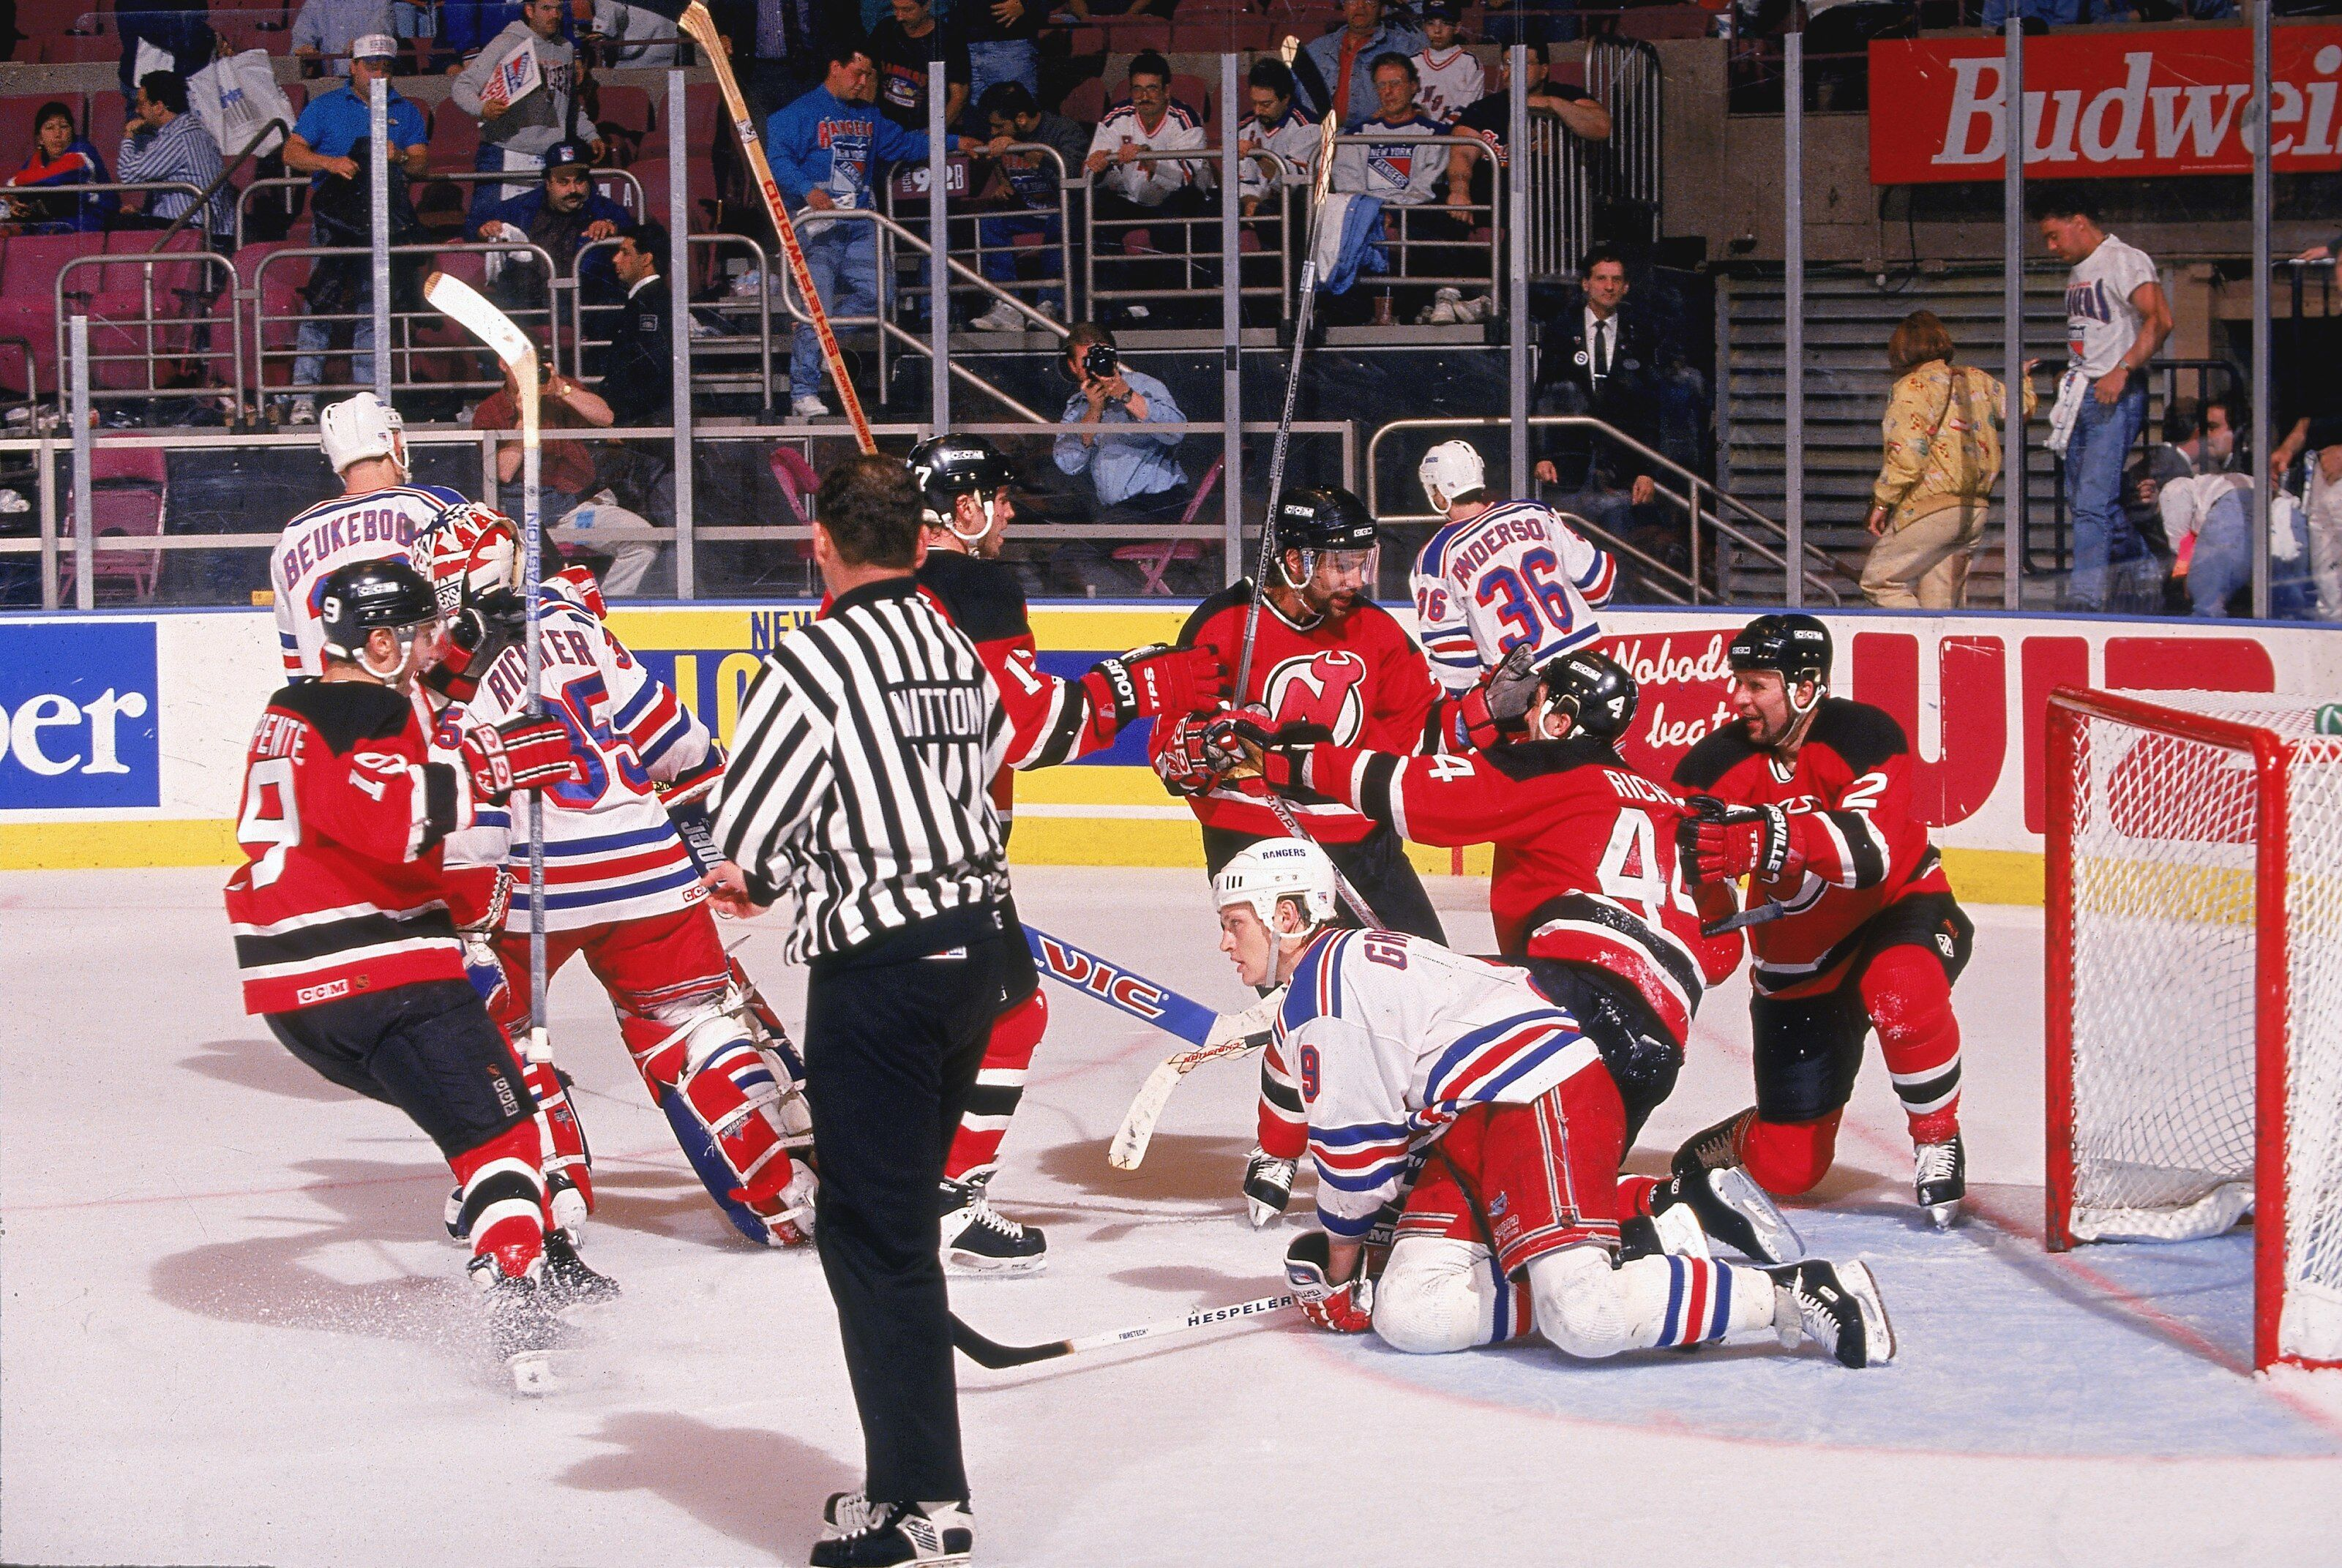 New Jersey Devils: What If the Rangers Didn't Win in '94?